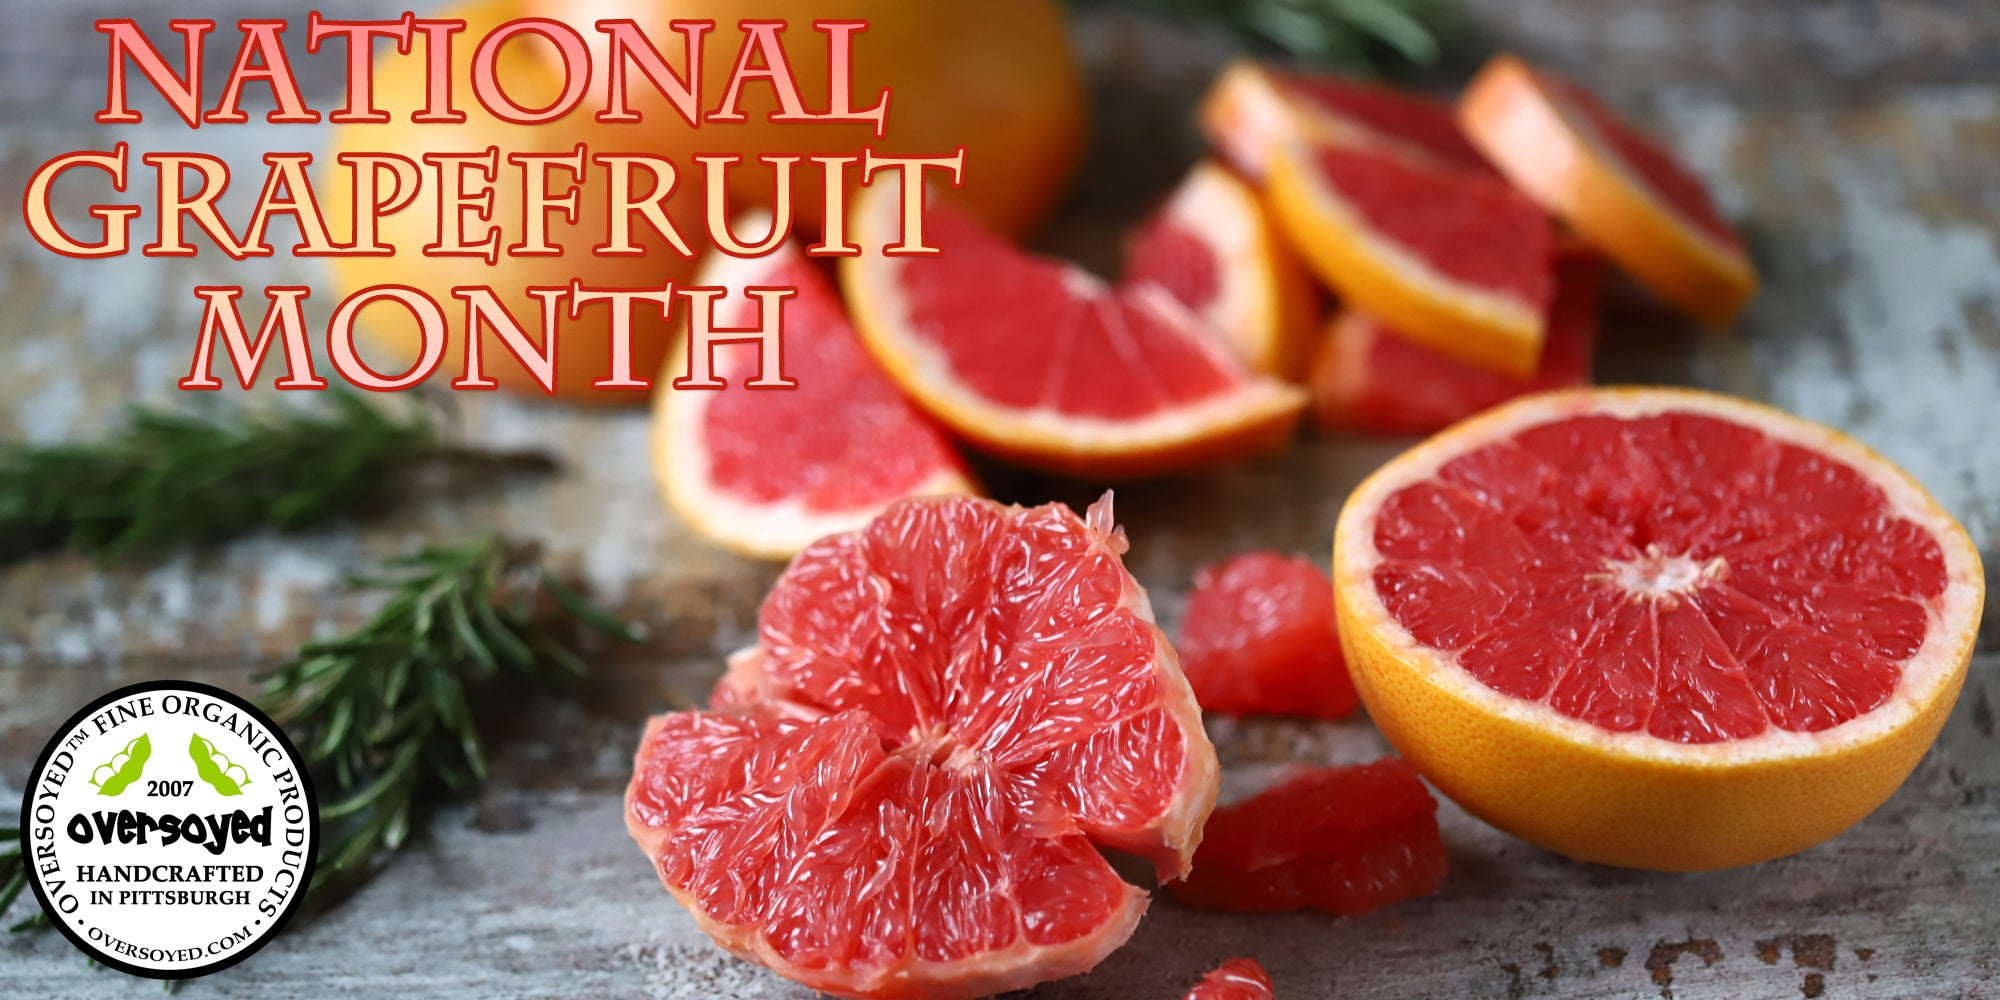 OverSoyed Fine Organic Products - National Grapefruit Month Collection